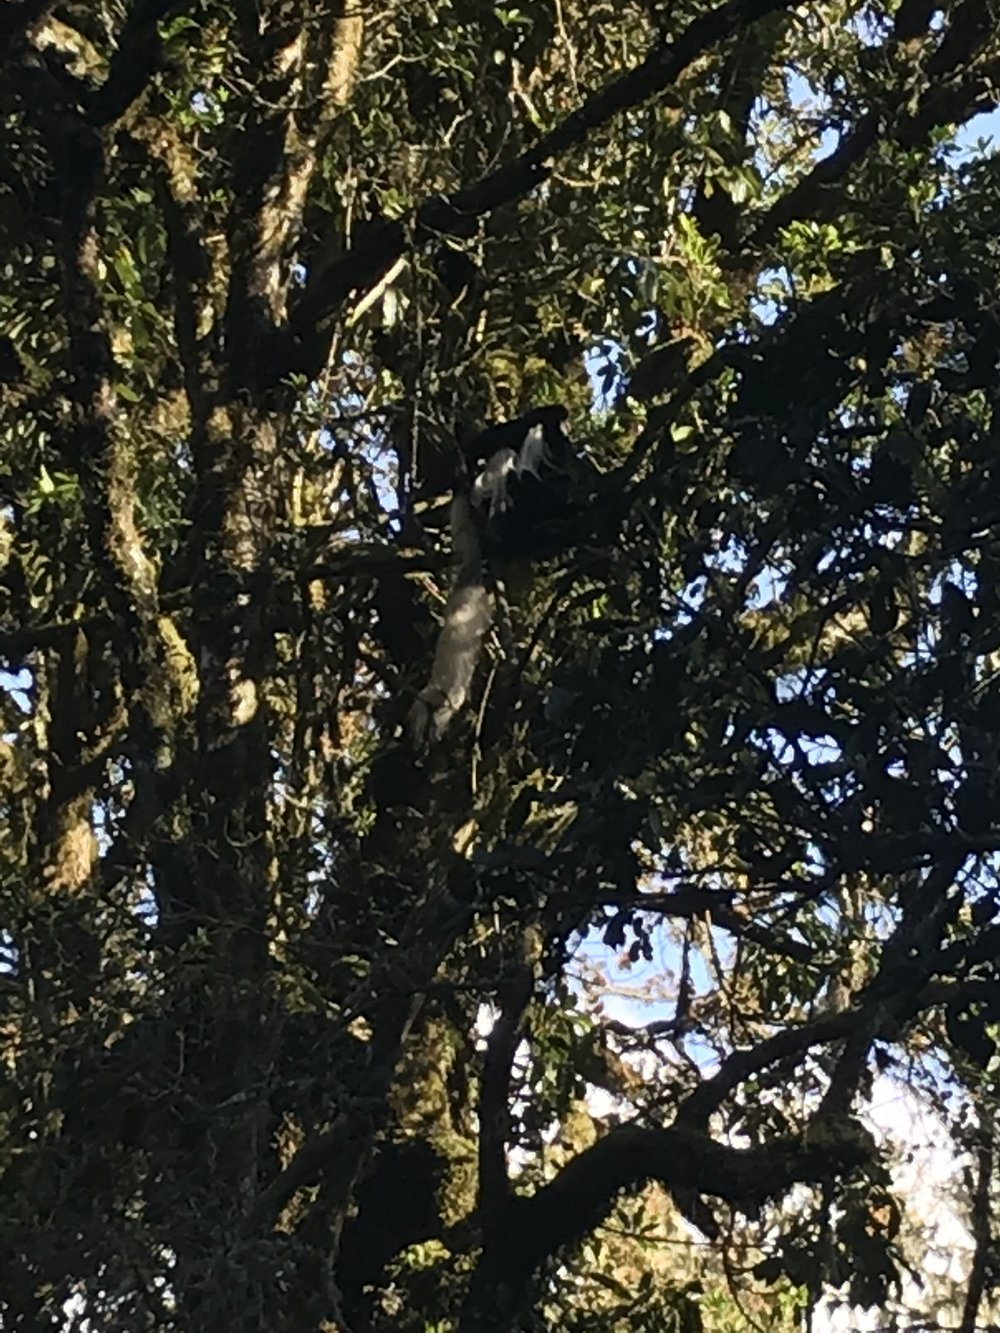 It is difficult to see but that is a monkey in the tree who we saw on our first day. :)